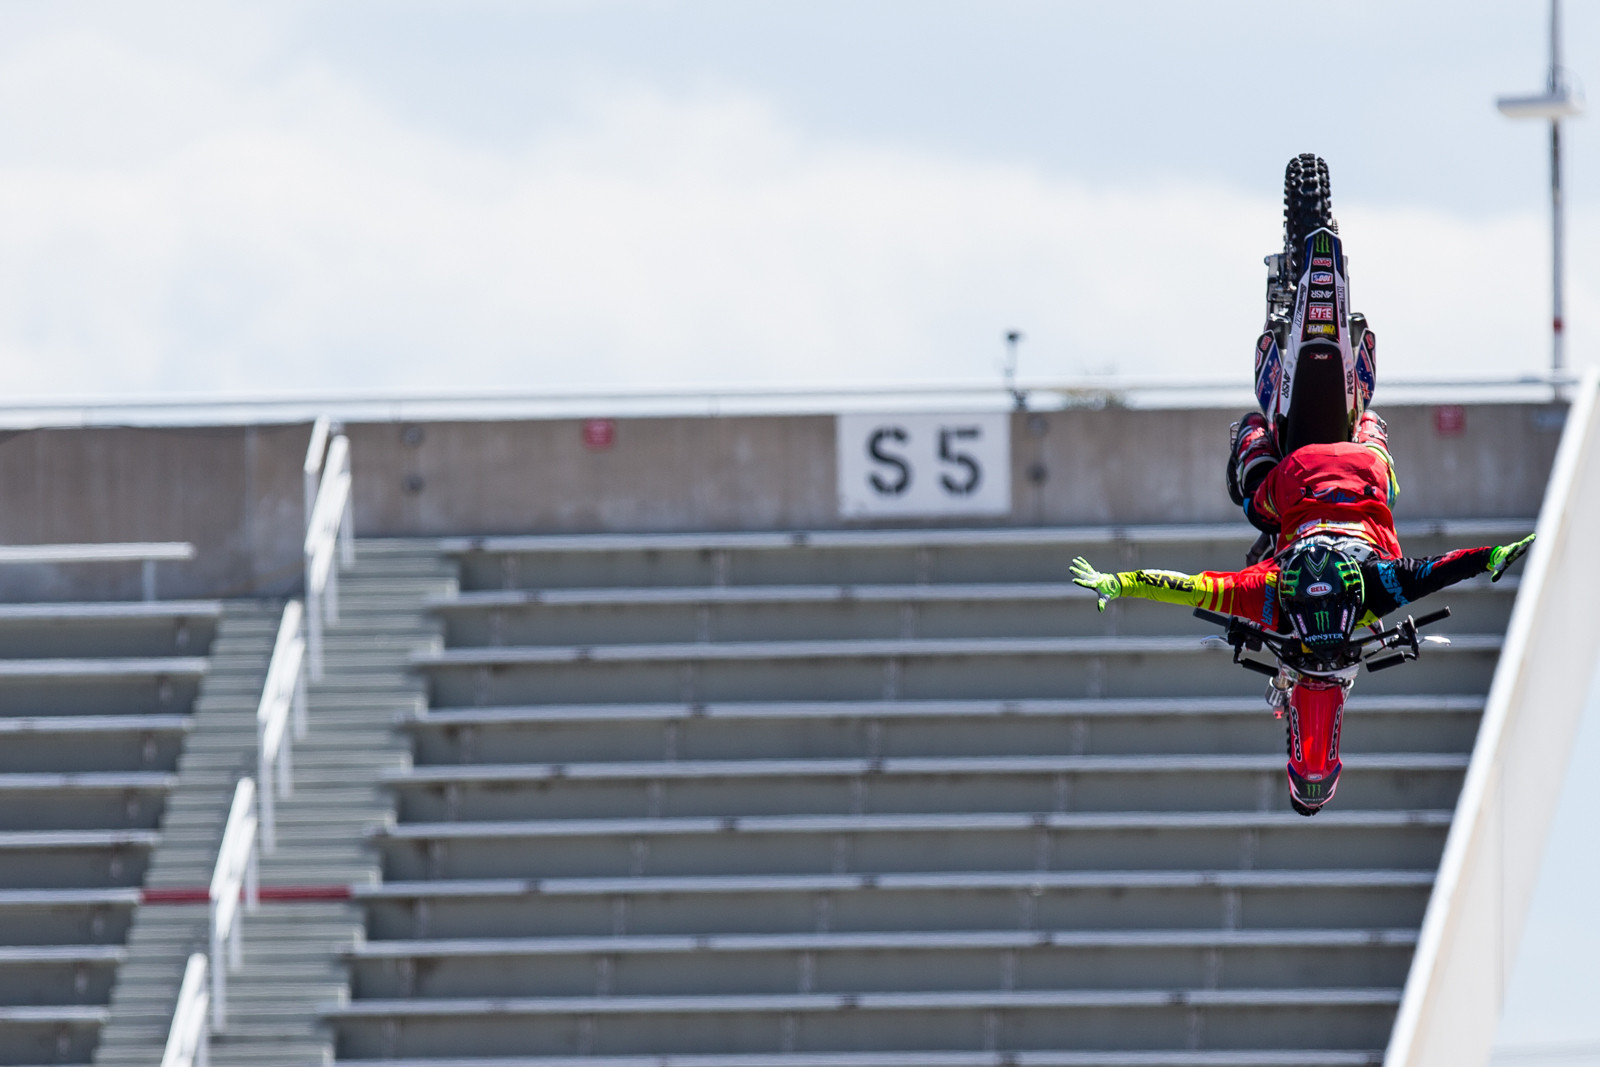 Harry Bink - 2016 Nitro World Games: FMX Qualifying Gallery - Motocross Pictures - Vital MX